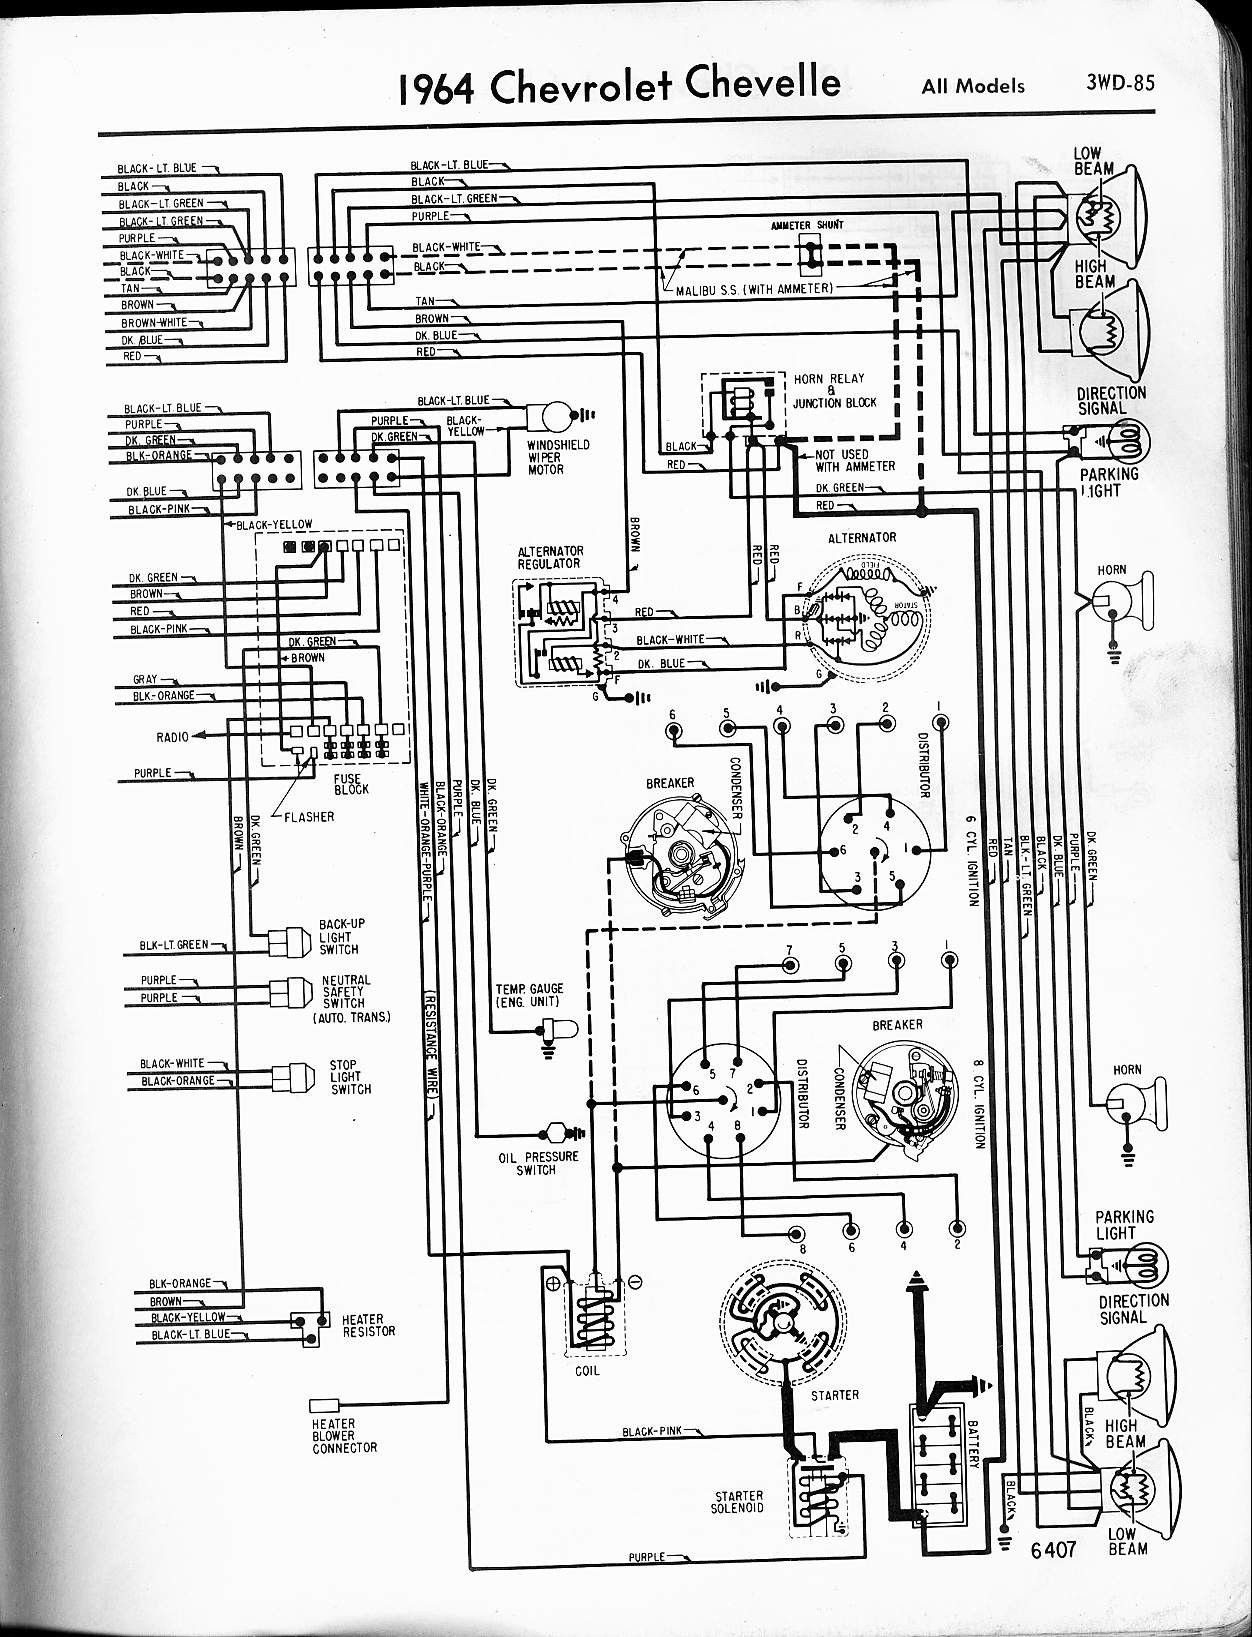 1970 Chevy Voltage Regulator Wiring Diagram Worksheet And 1968 Ford Alternator Chevelle Easy Rules Of Rh Lushpuppy Co Harley